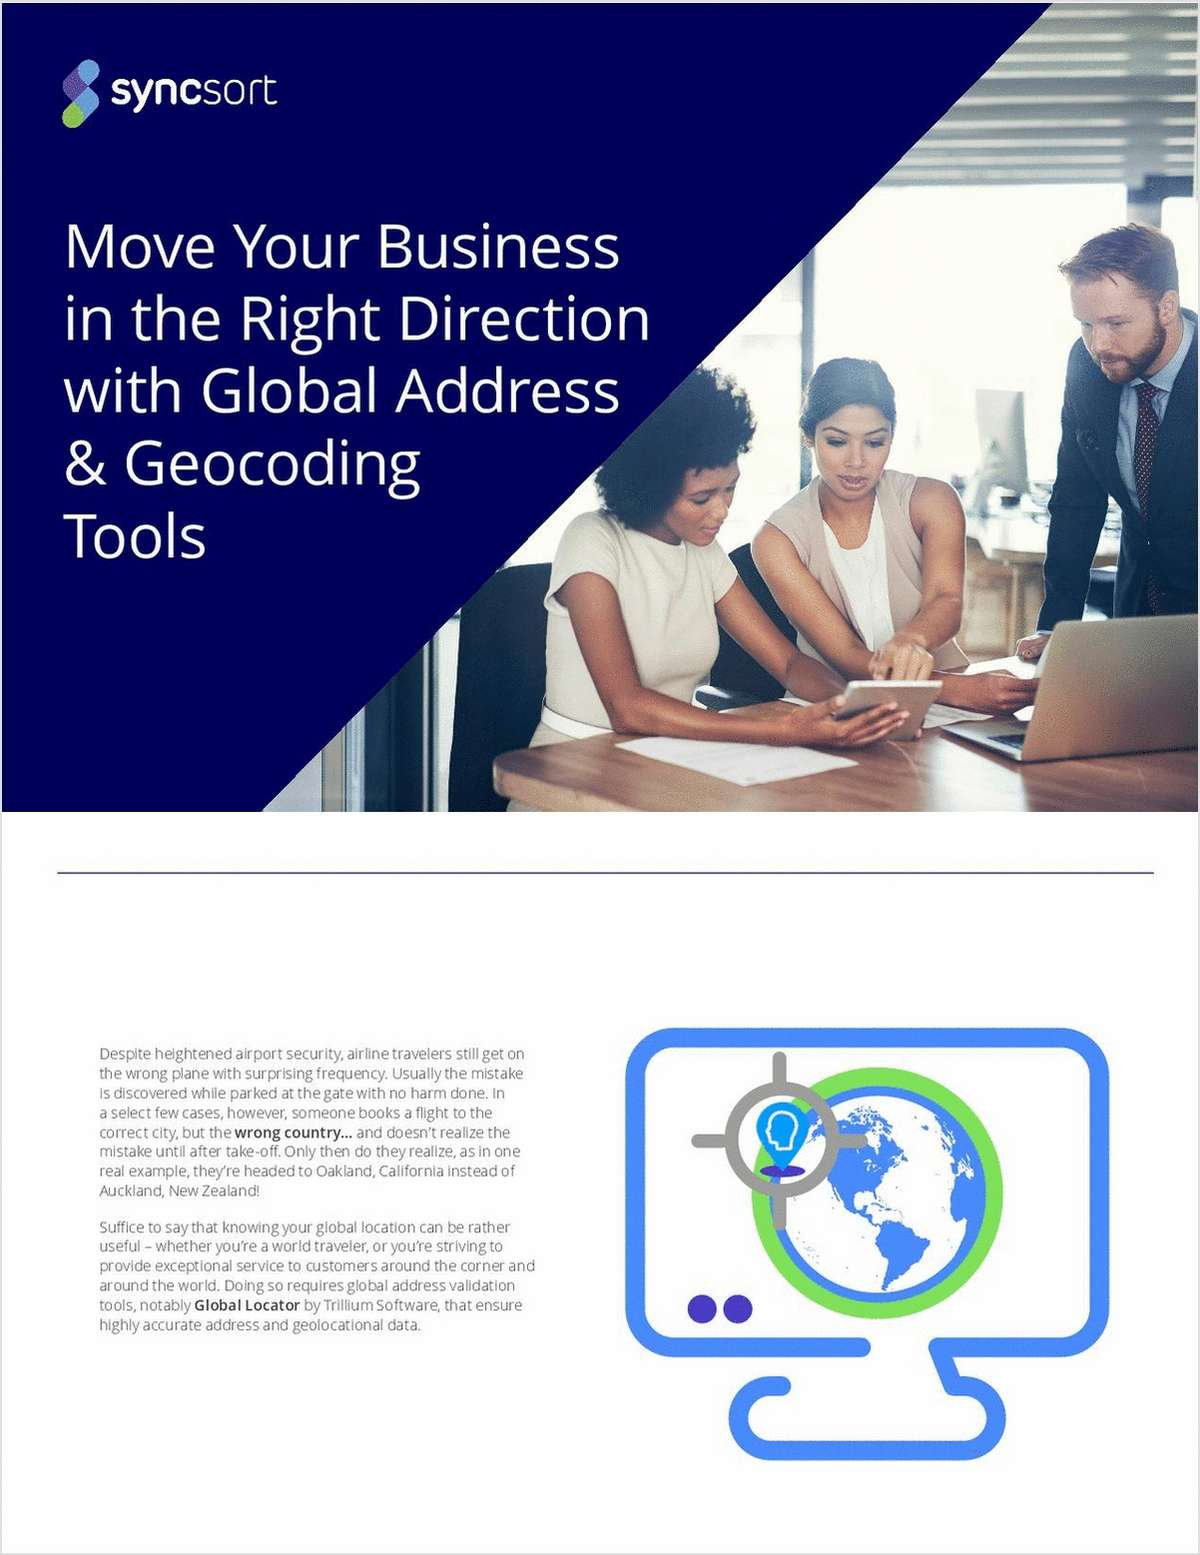 Learn How Global Address Validation Tools Can Improve Customer Experience